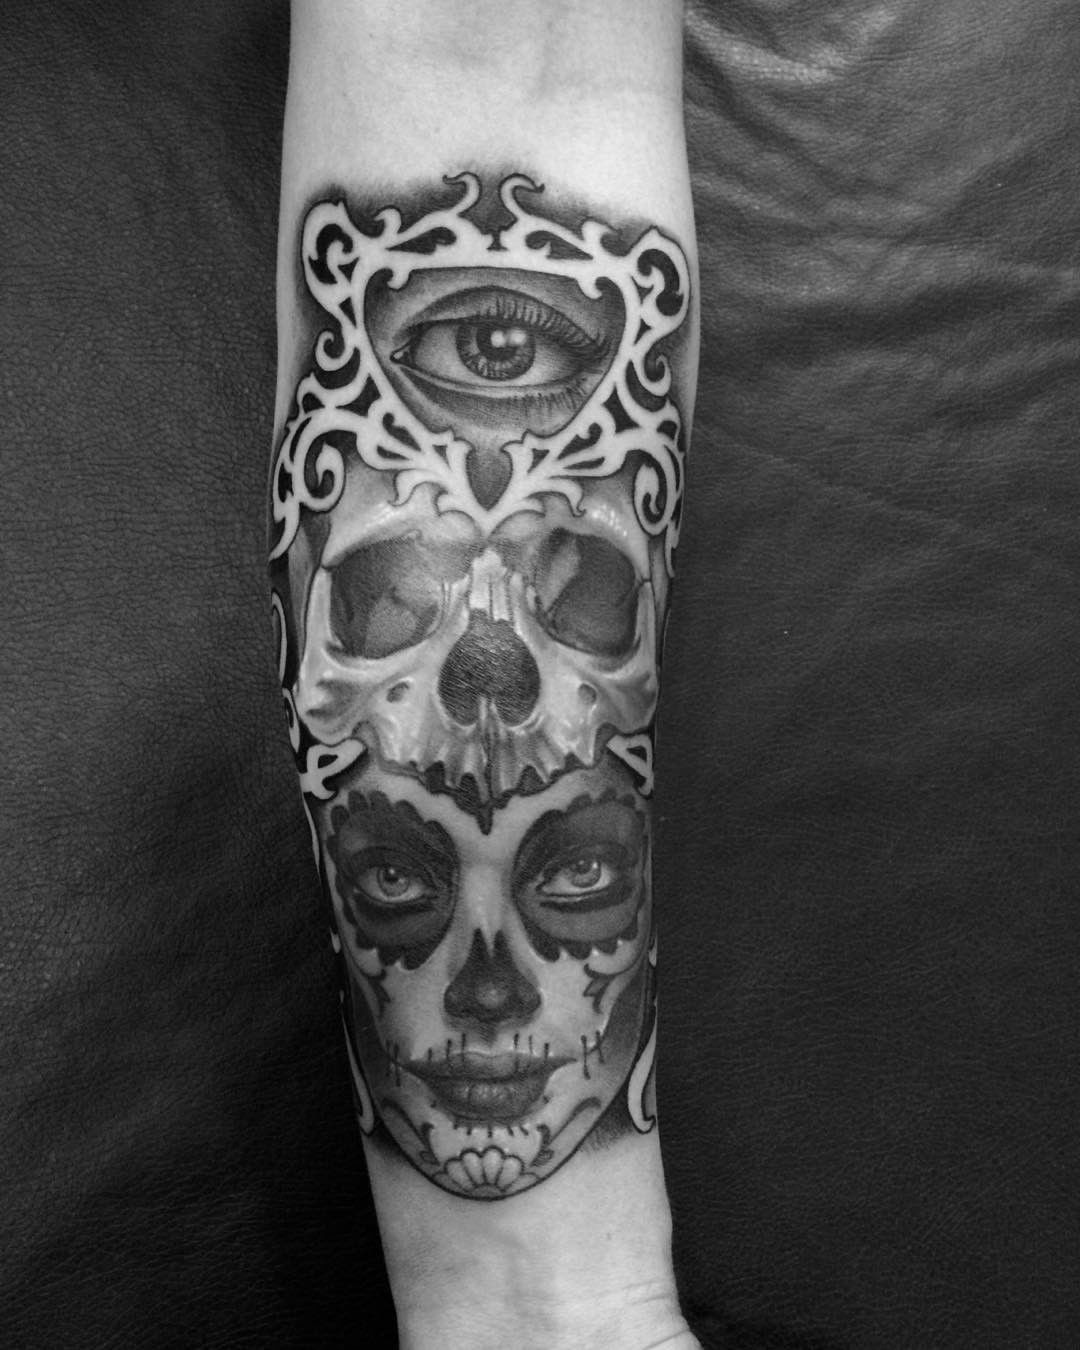 50 Best Mexican Tattoo Designs & Meanings - (2019)